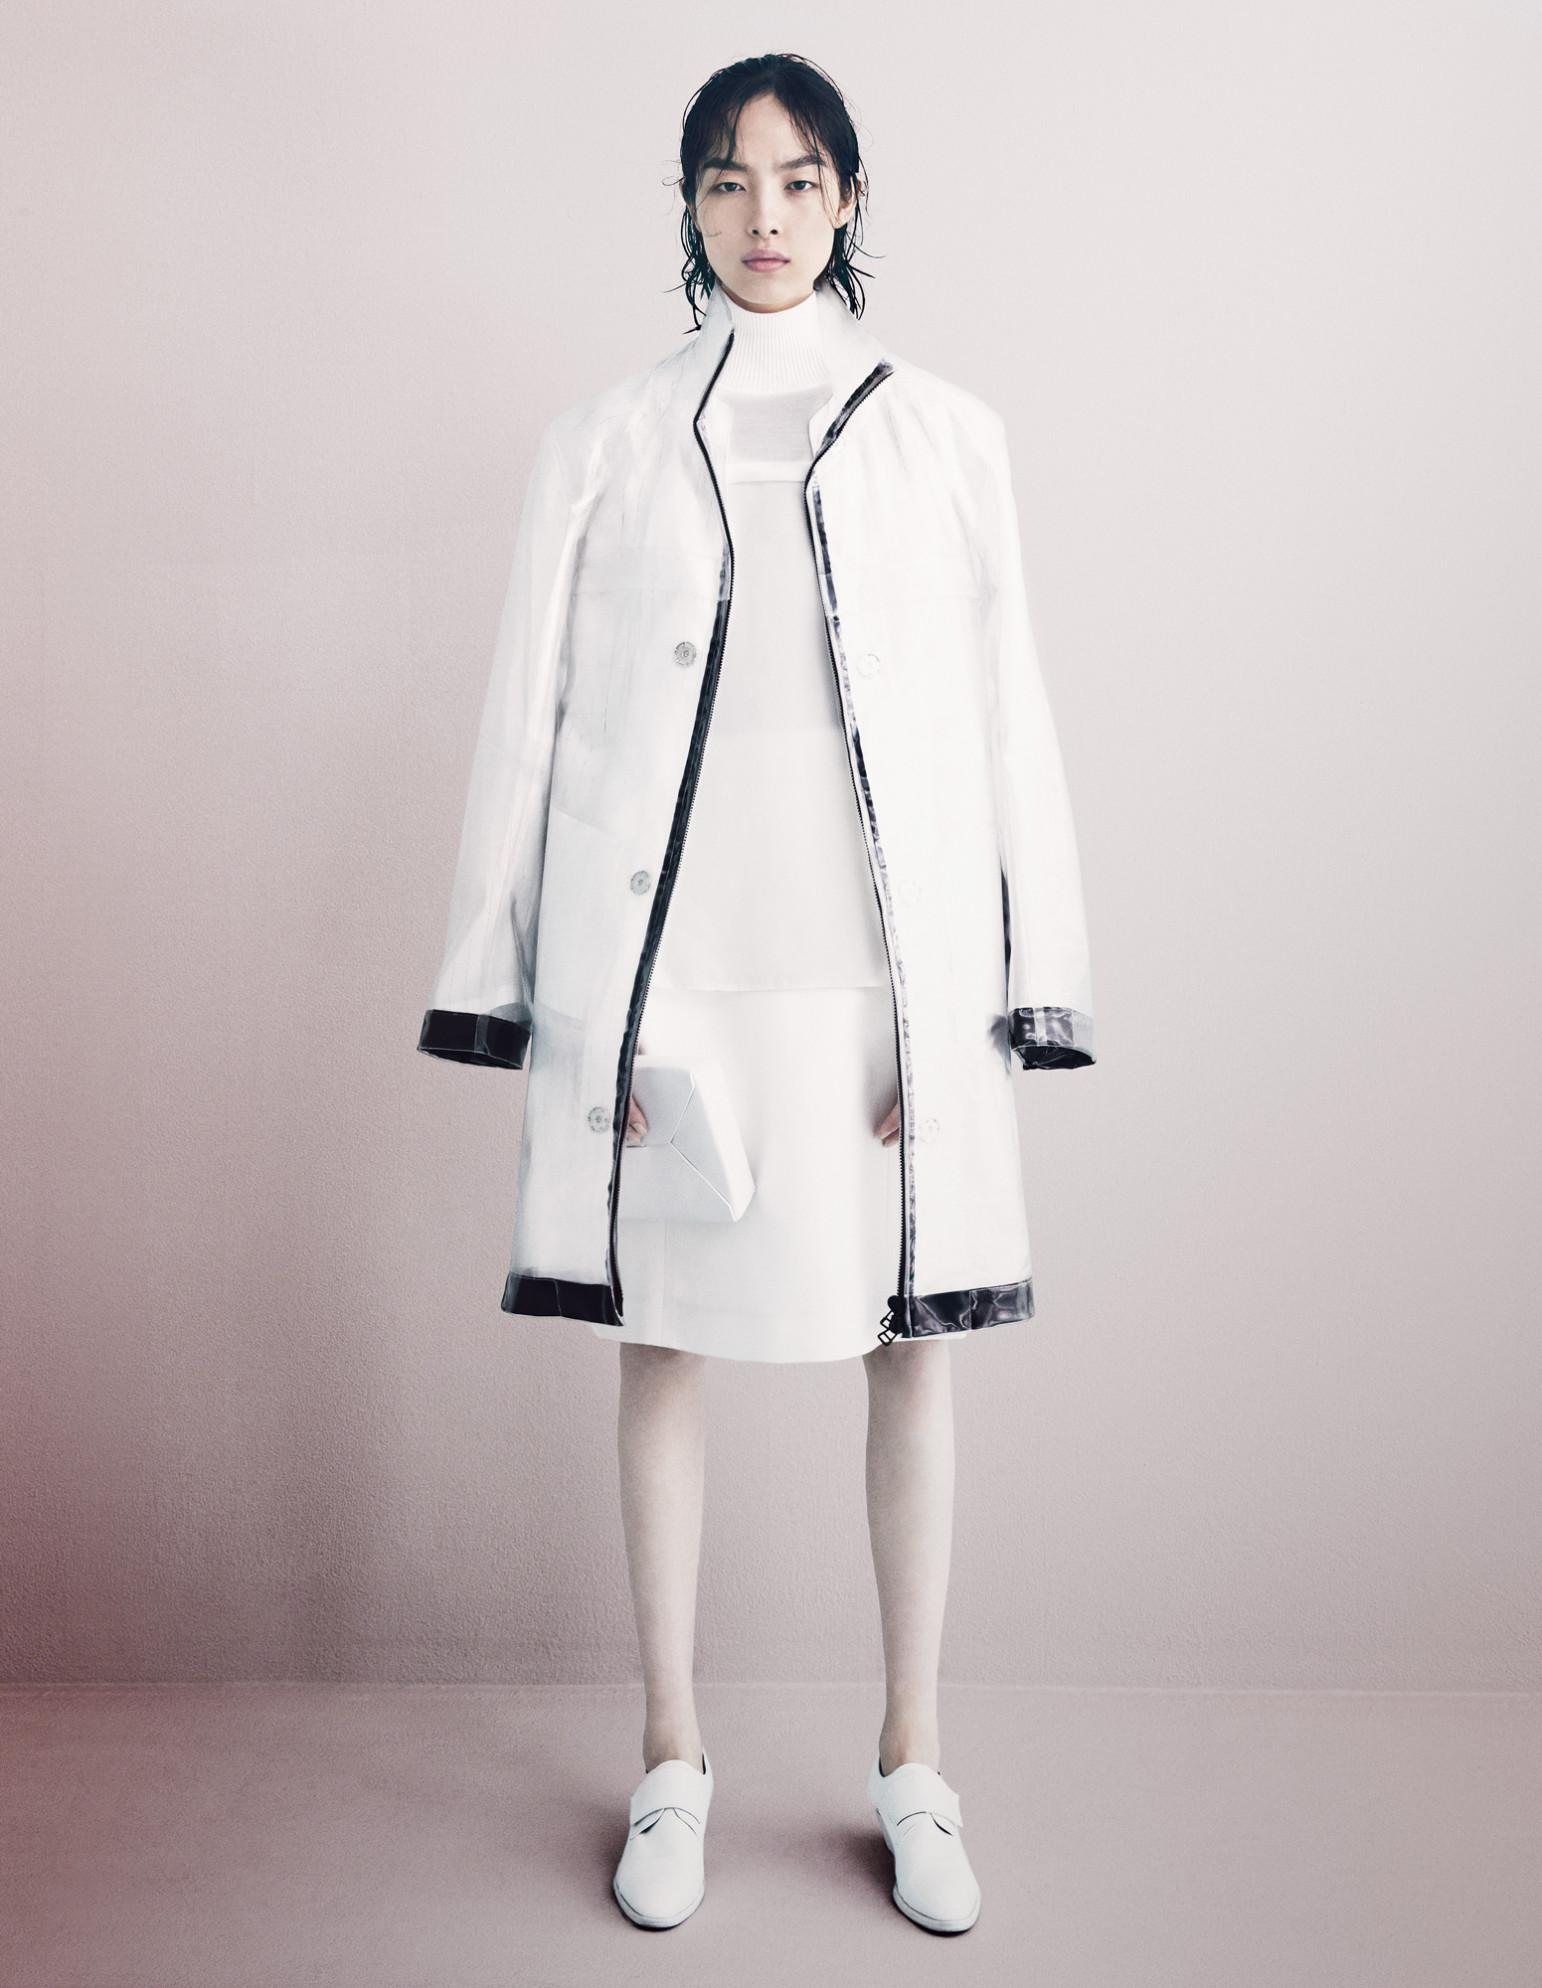 Embrace the wet look in the spring rain: http://t.co/RJMY599SK1 http://t.co/kxWRqmyJo4